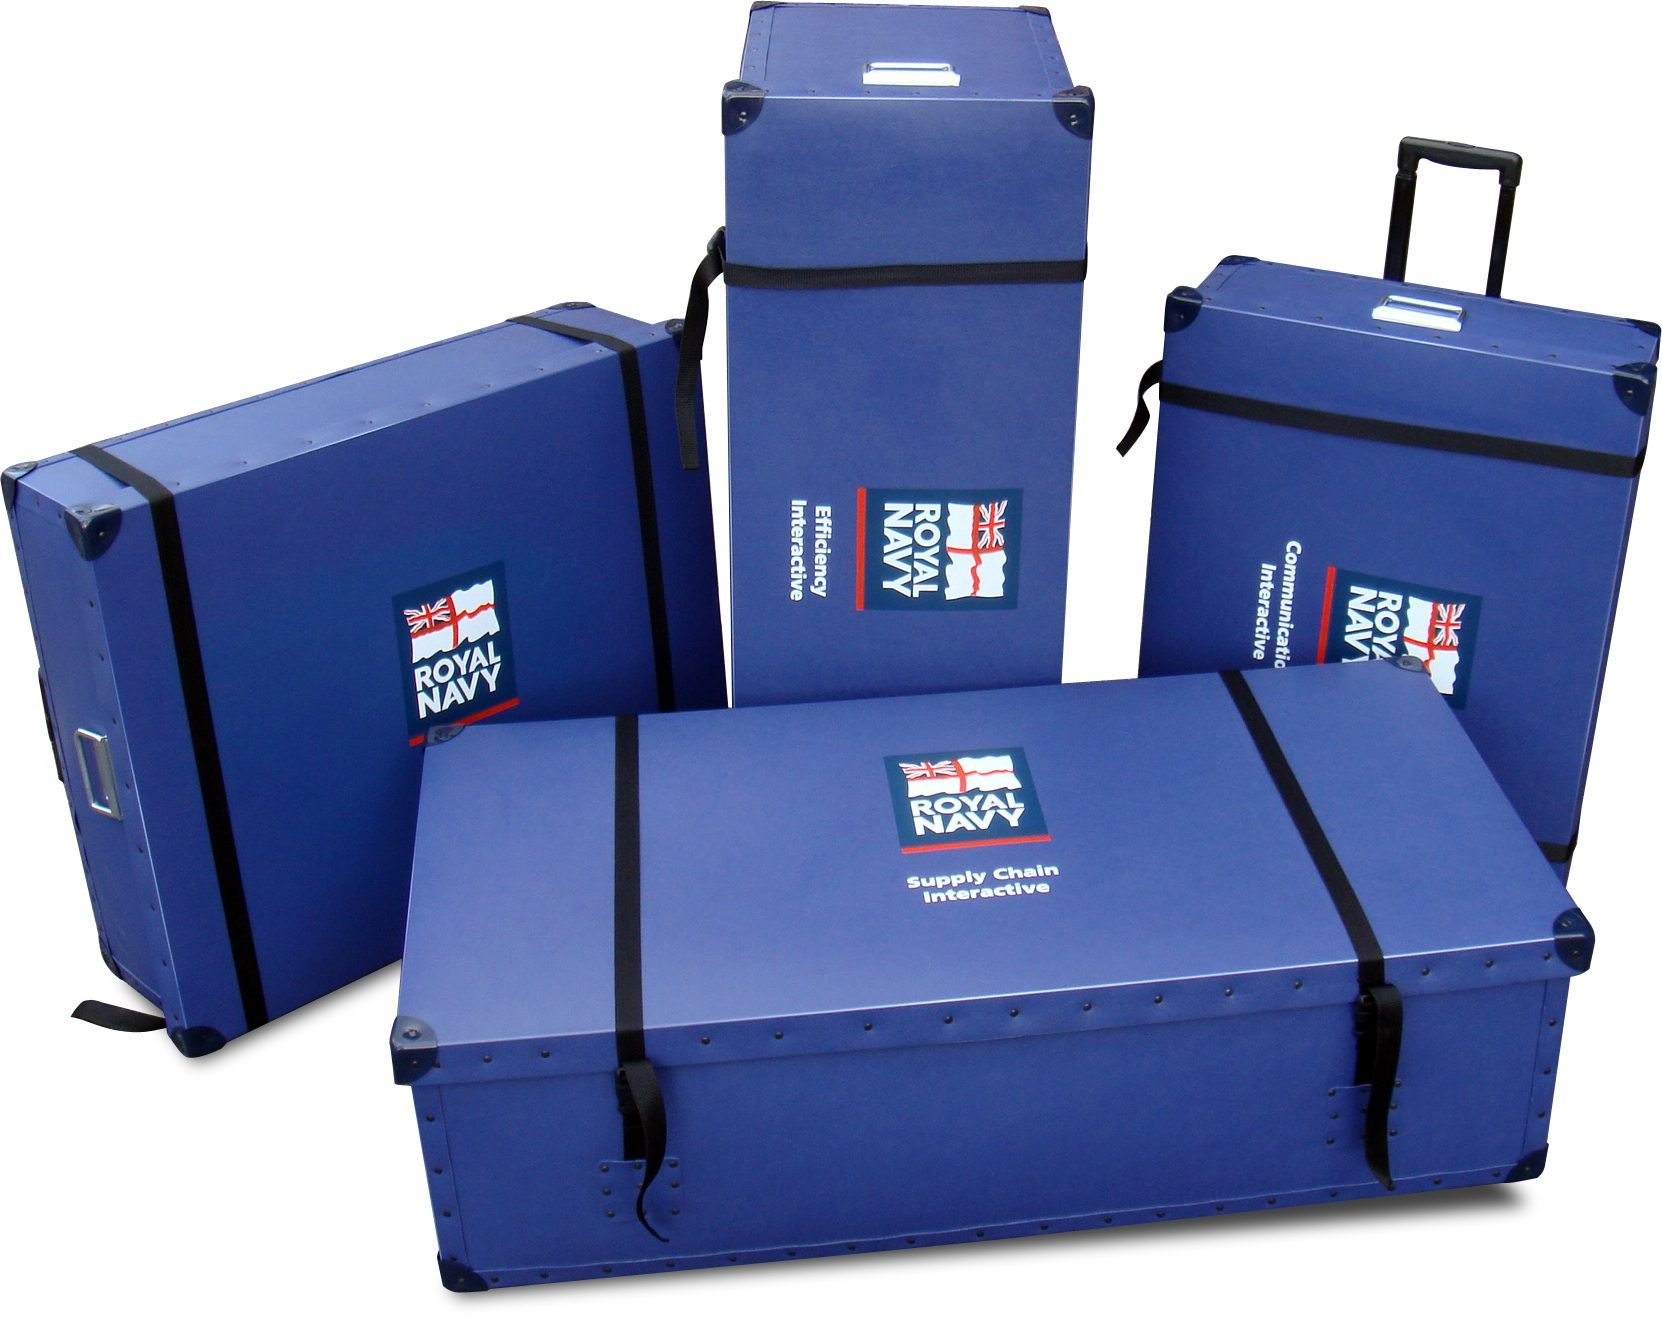 Printed Poly Cases for the Royal Navy